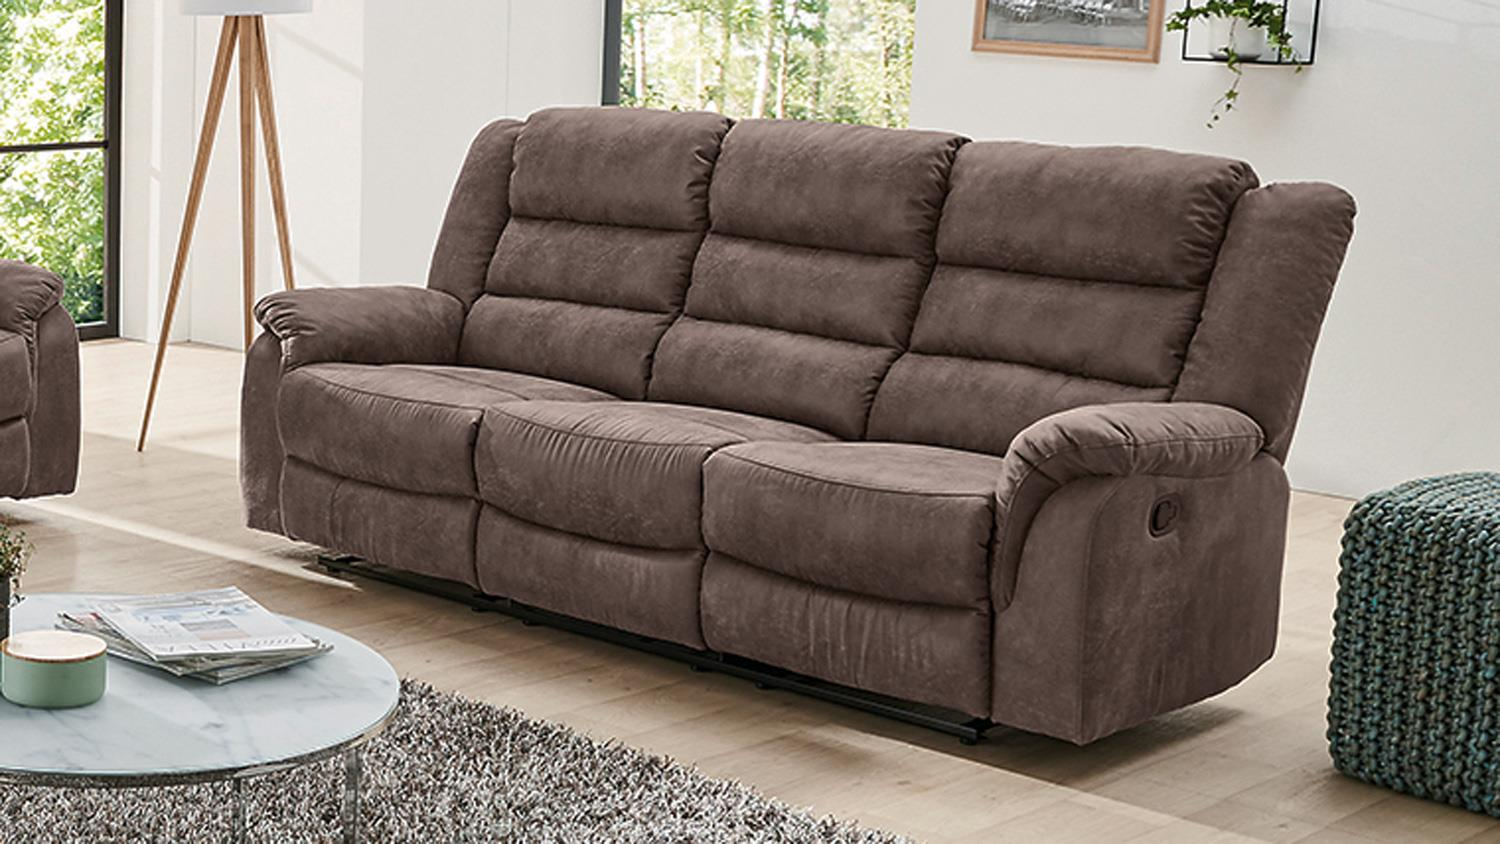 Sofa 3 Sitzer Mit Sessel Sofa Cleveland Sessel Relaxsessel 3 Sitzer Mit Funktion In